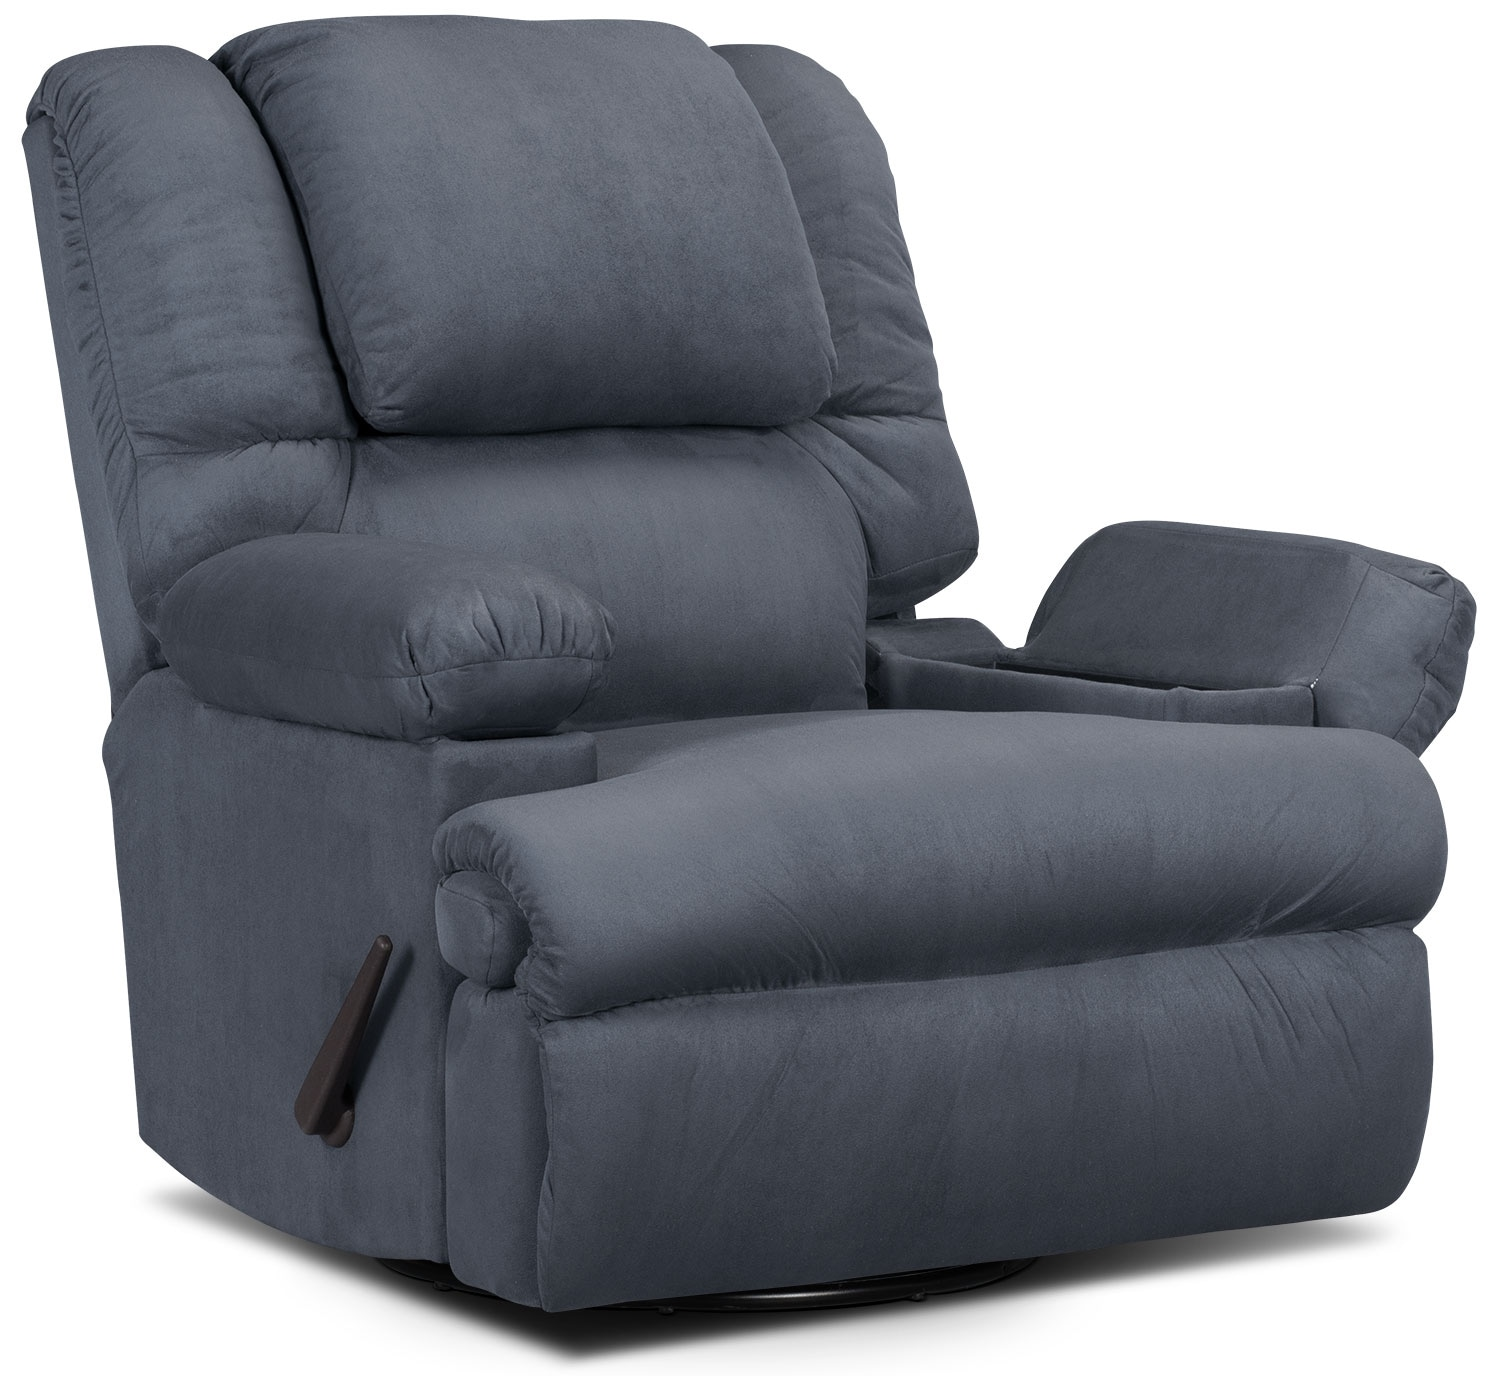 Living Room Furniture - Designed2B Recliner 5598 Padded Suede Swivel Rocker with Storage Arms - Navy